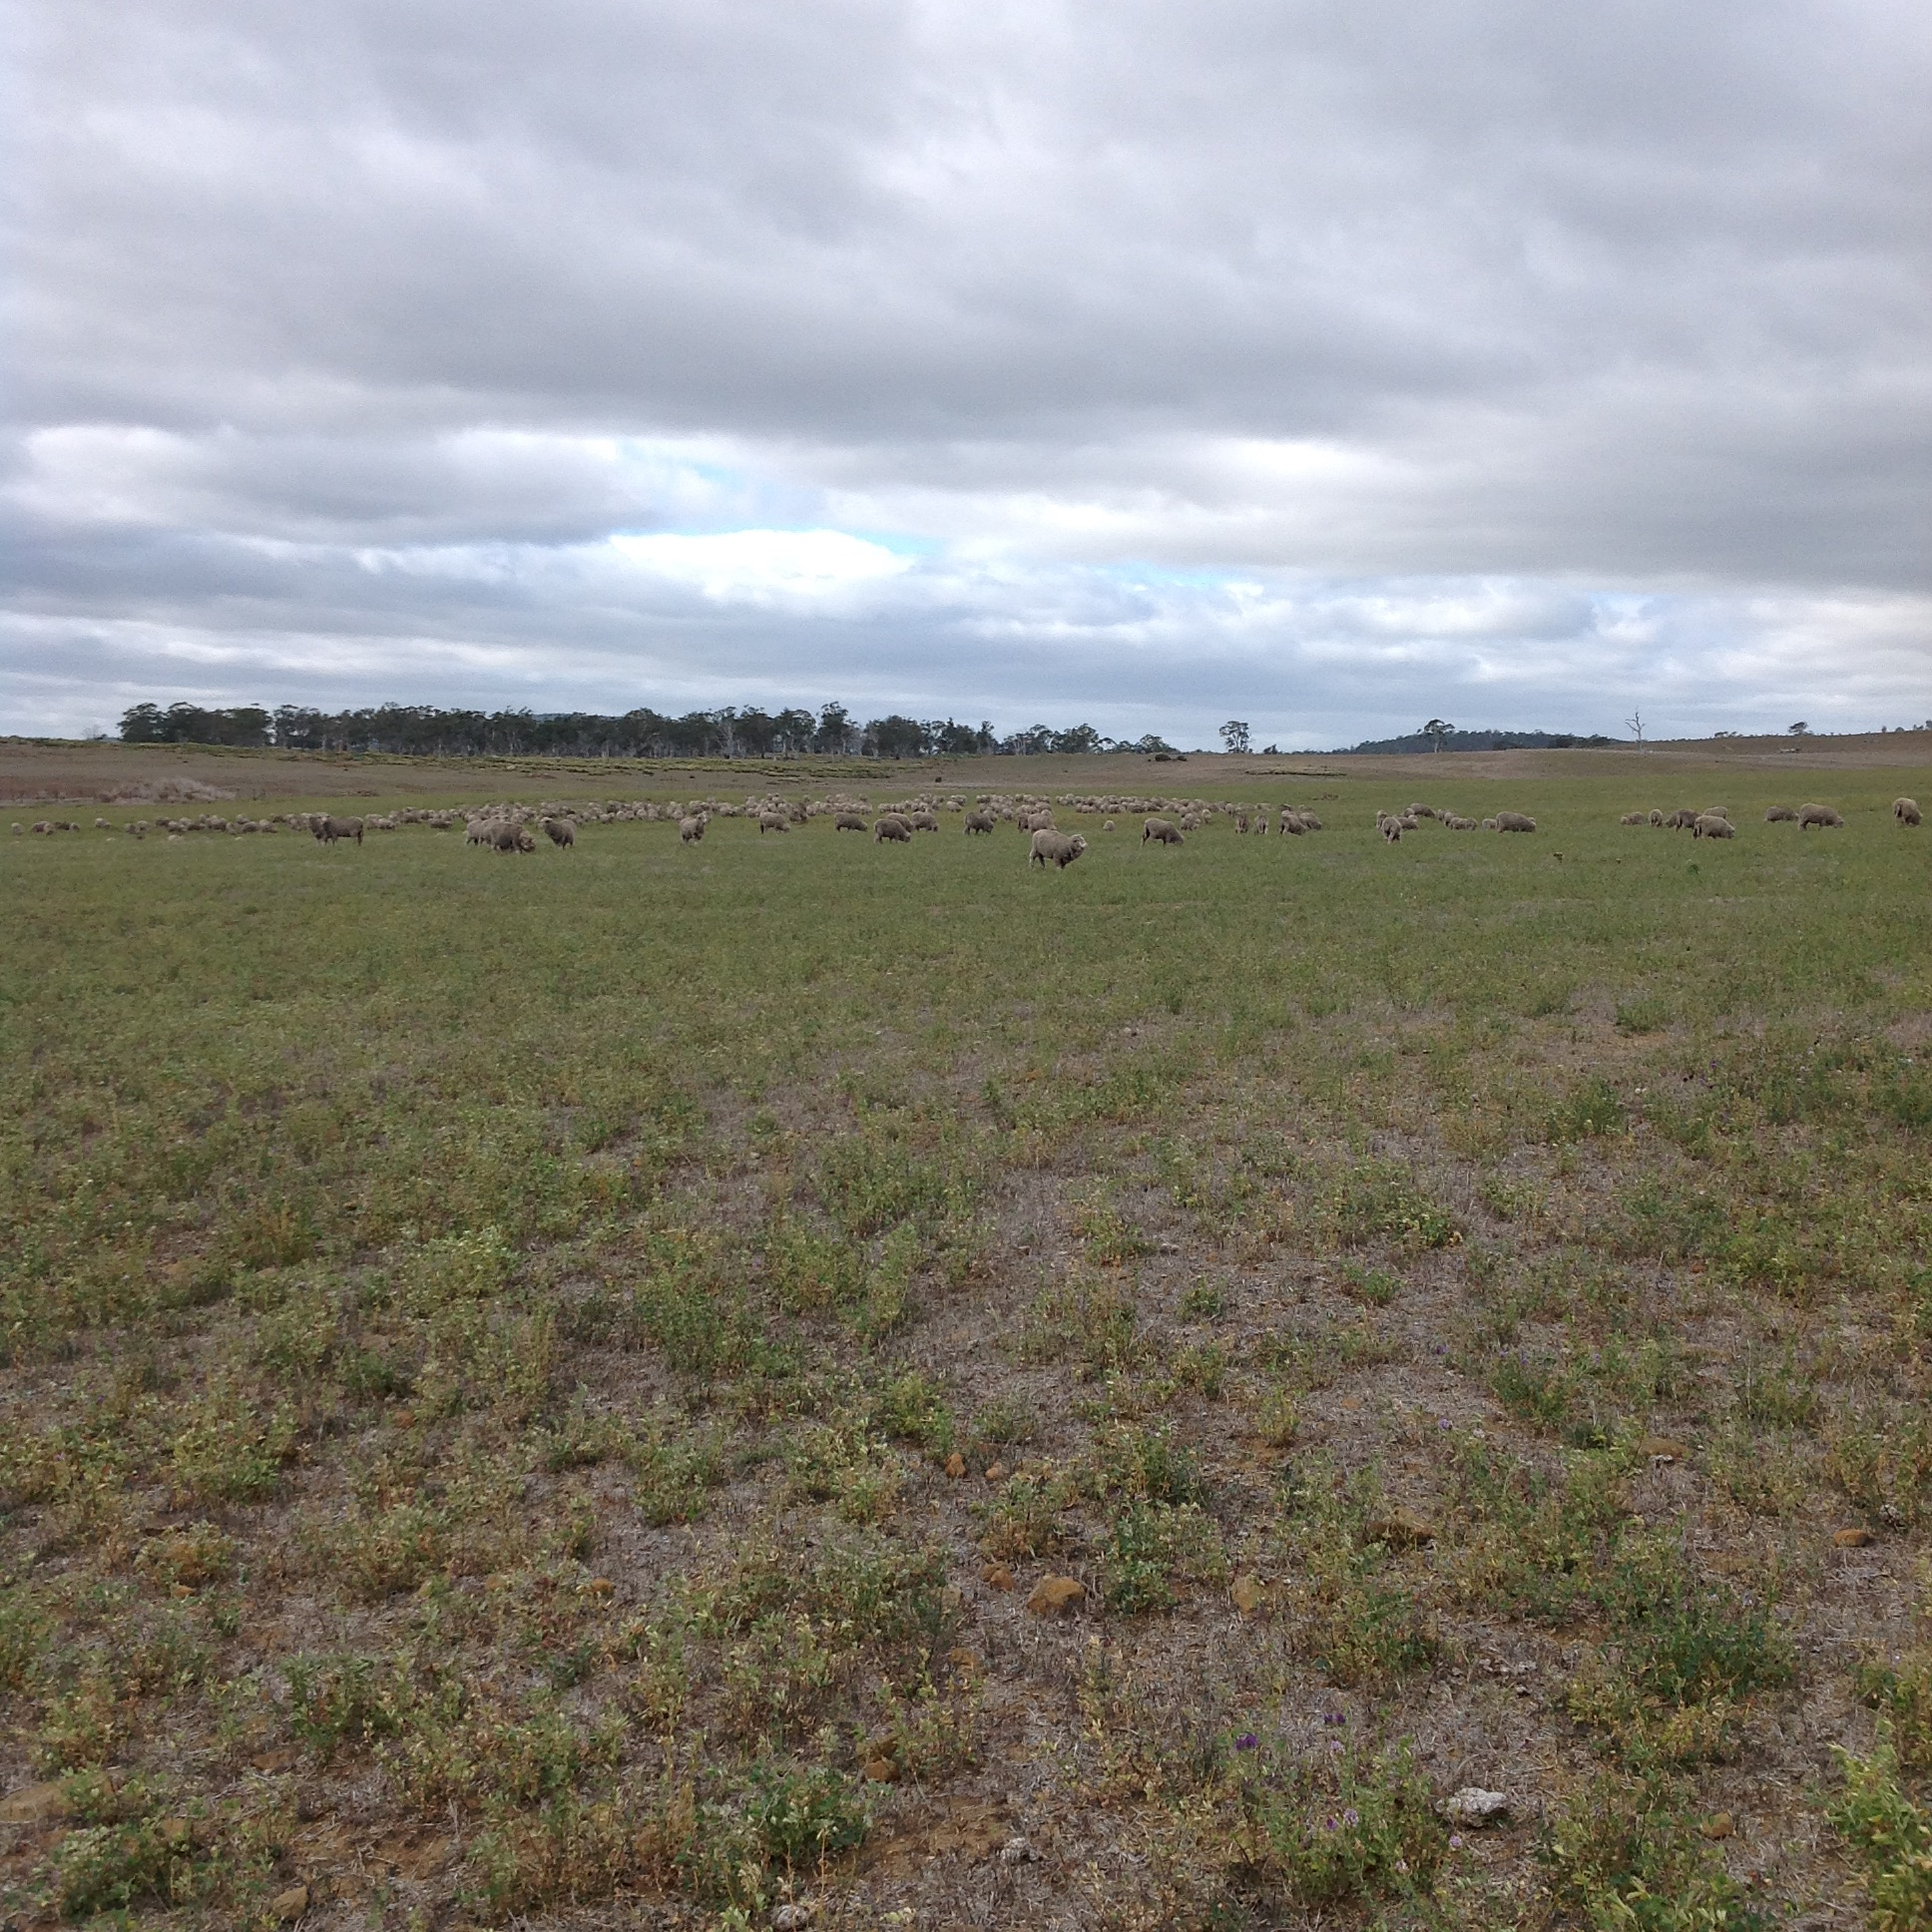 P4: Free graze to the southern boundary fence of this paddock. Stragglers keep returning for a drink at the troughs near me, even though they had access just ½ hour ago in the pickup paddock! Kinda like kids.